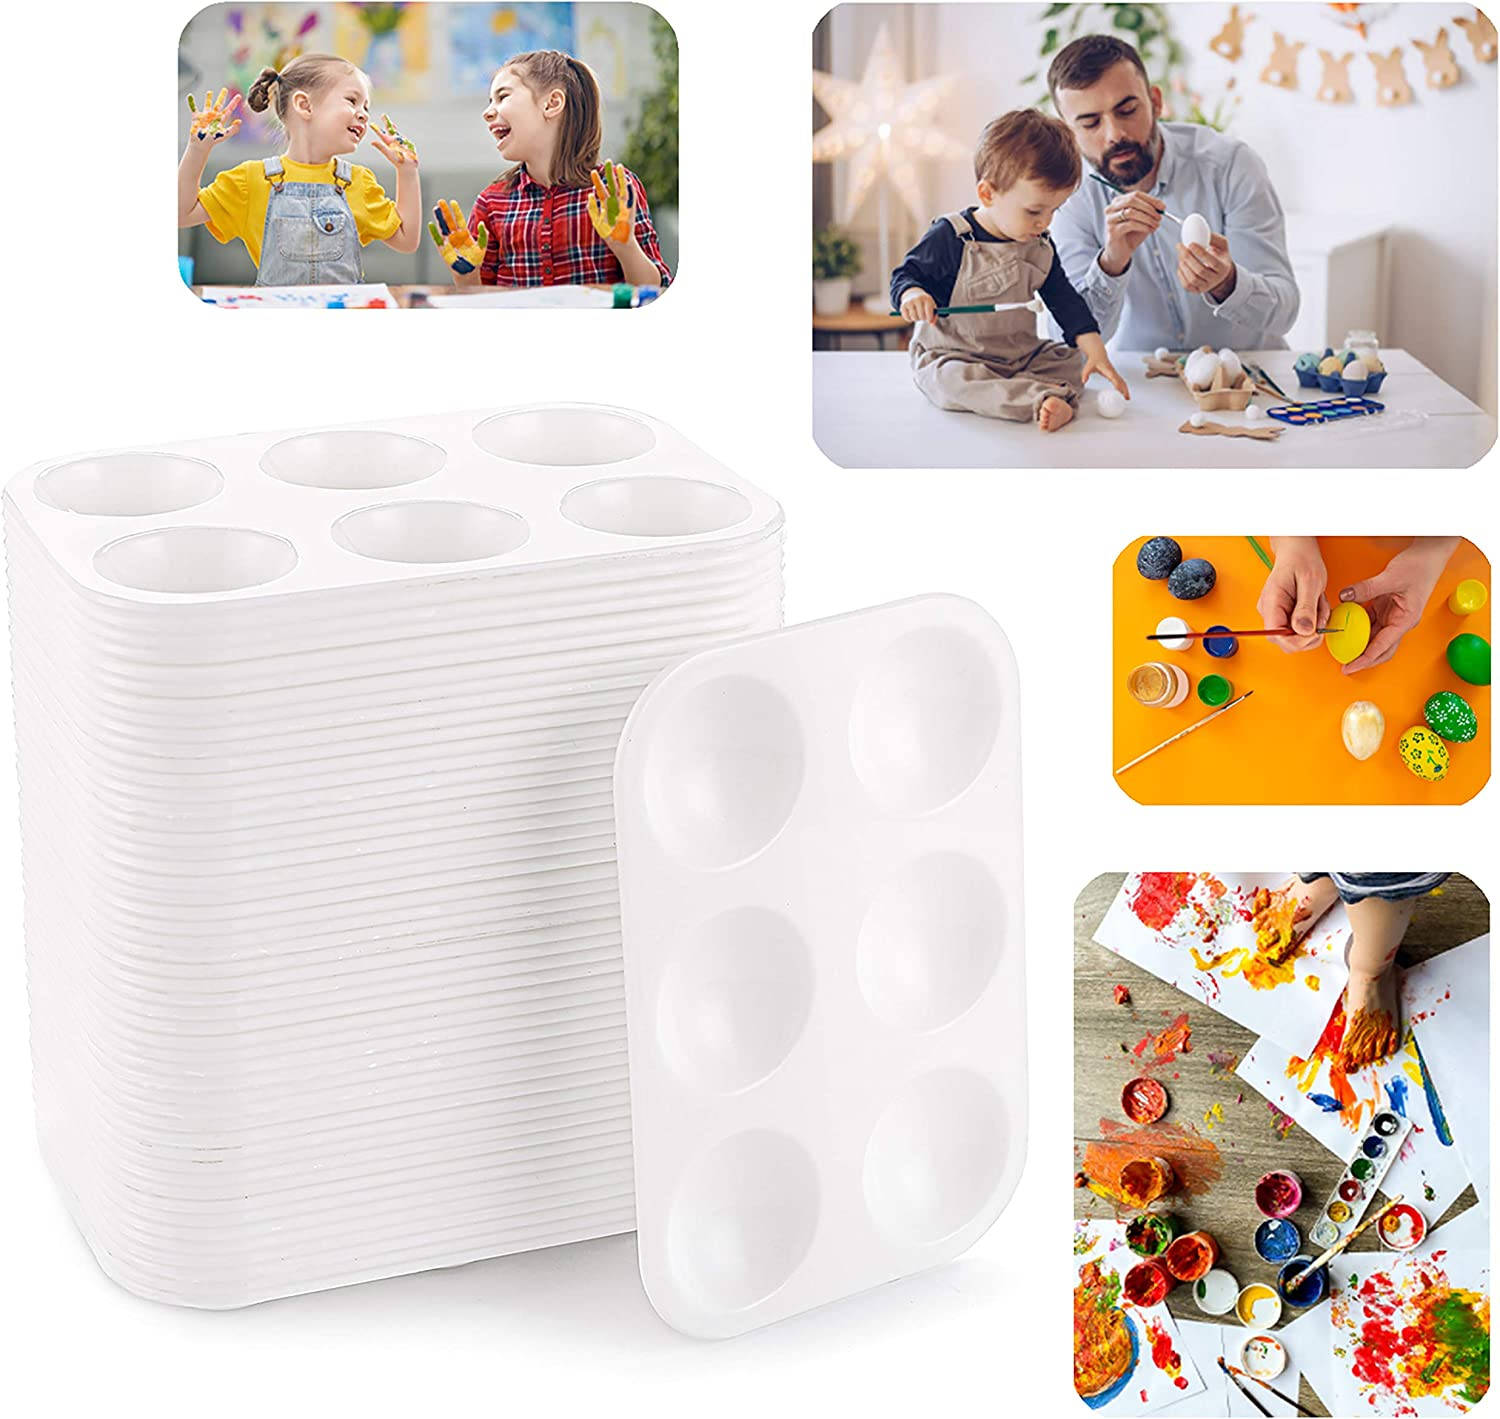 Rectangular Plastic Paint Tray for Kids Student Watercolor Craft DIY Art Painting Easy to Clean Cedilis 50 Pack White Art Paint Tray Palette 6 Wells Adult